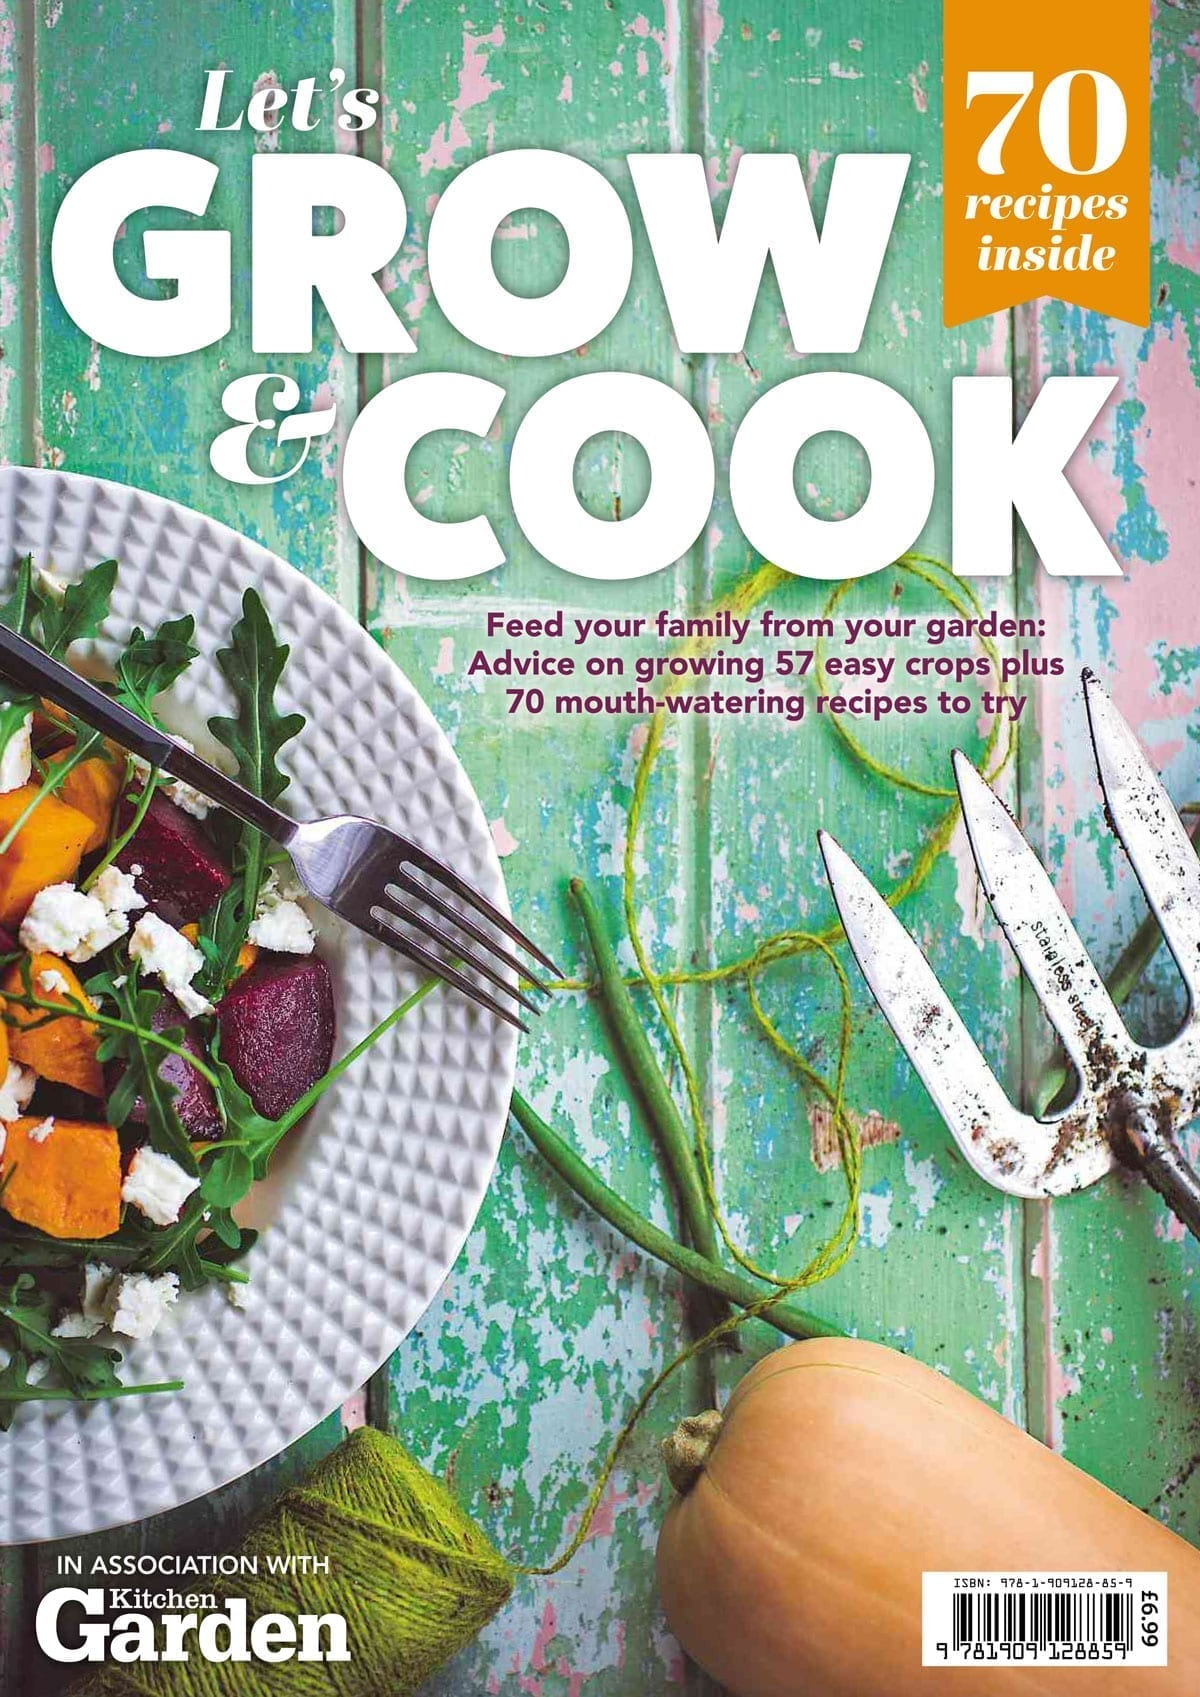 Let's Grow & Cook